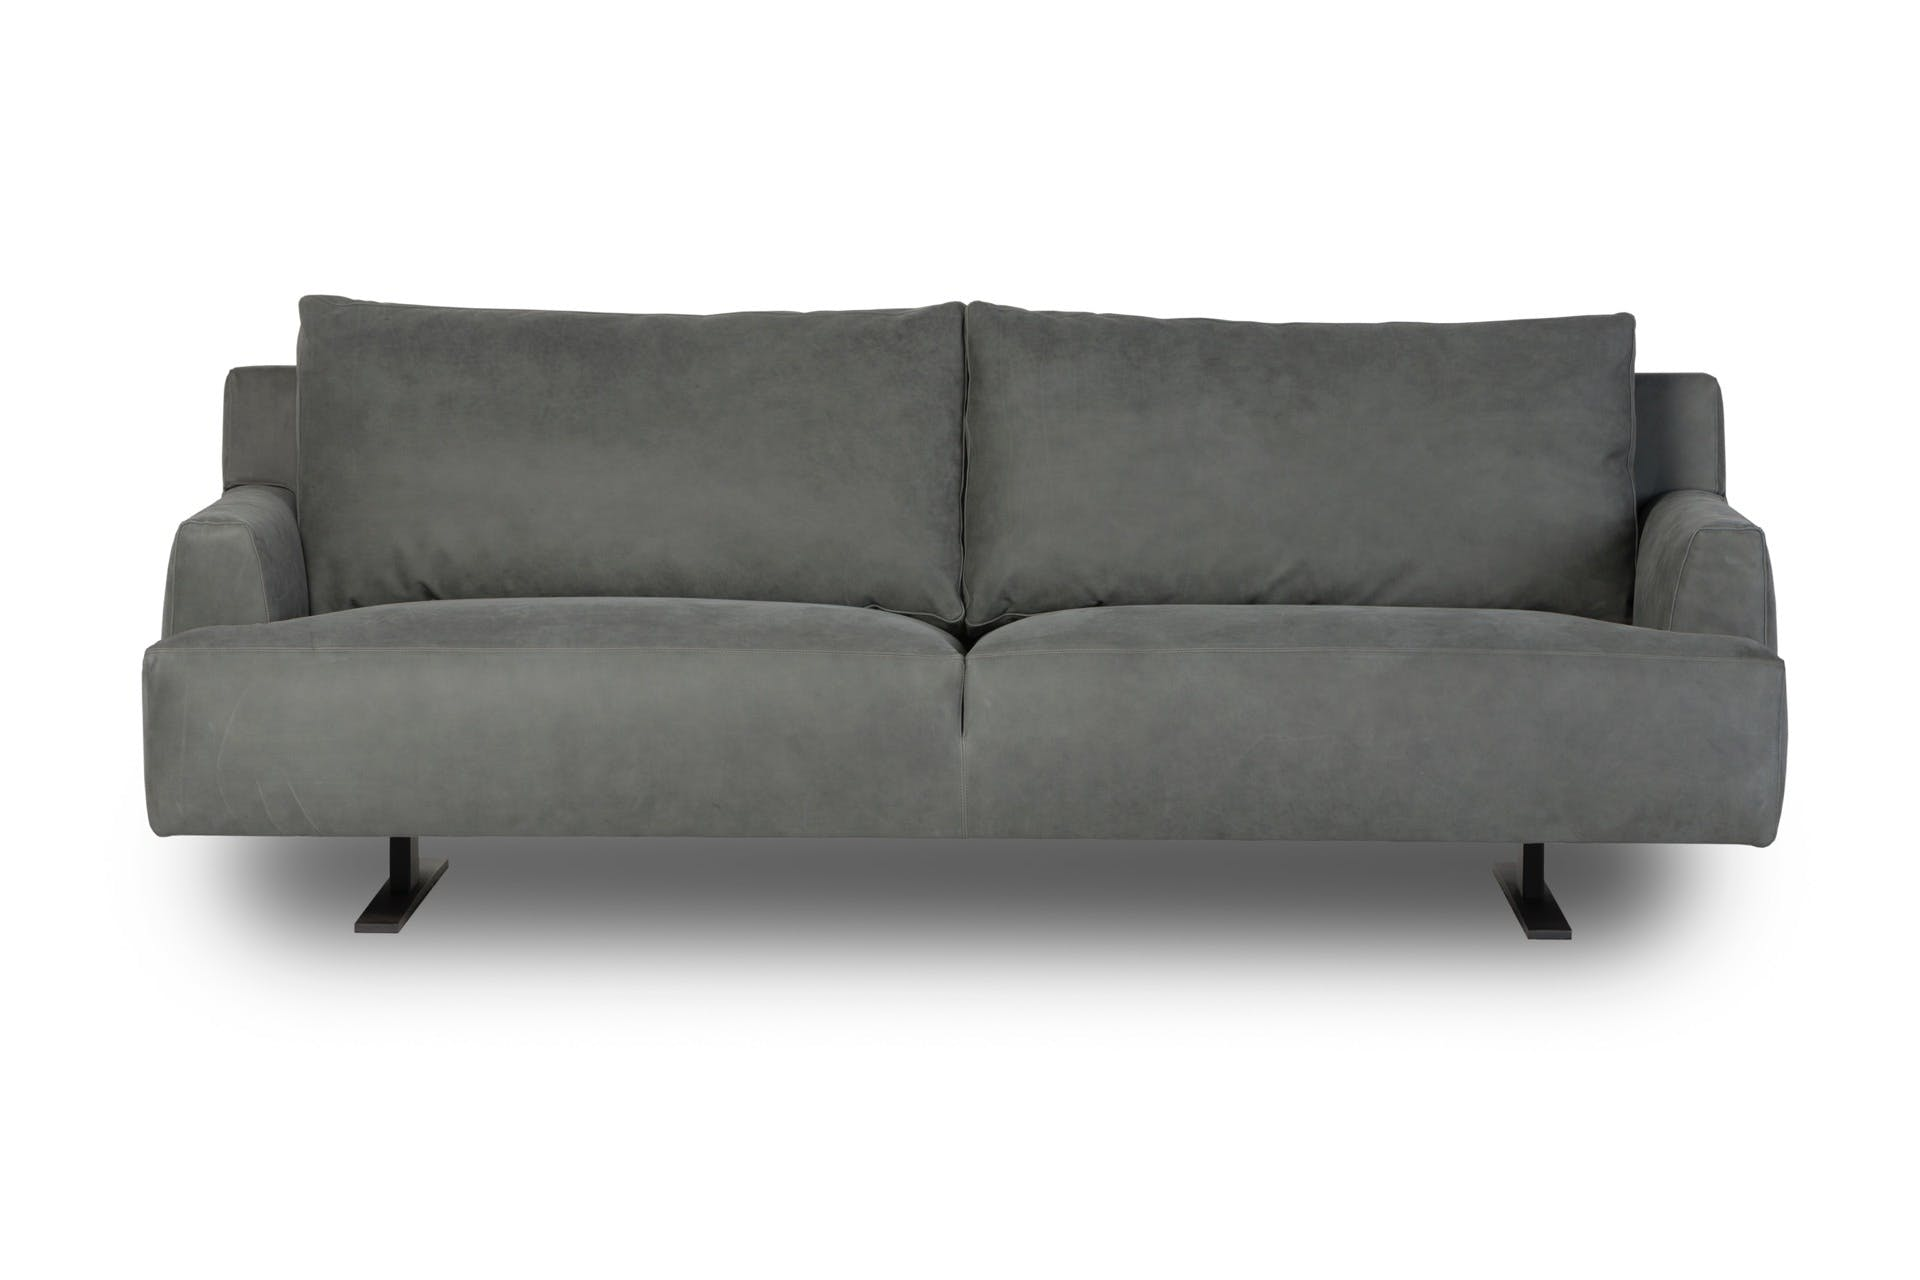 Settee 1 Niels Bendtsen Low